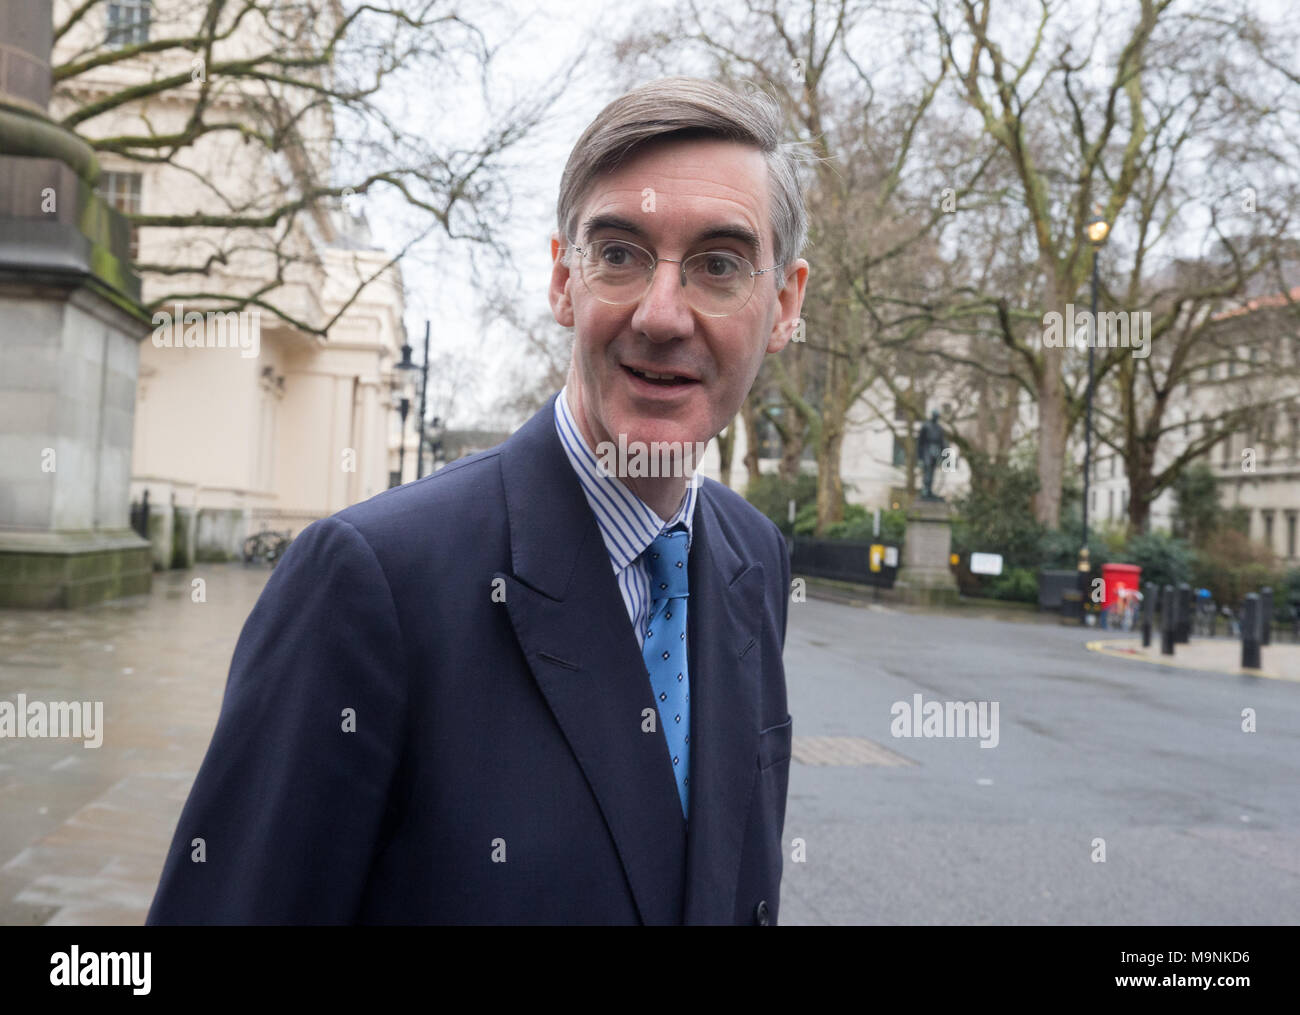 Jacob Rees-Mogg, arriving to speak at the 'Leave Means Leave' event in Central London with one full year to go. - Stock Image